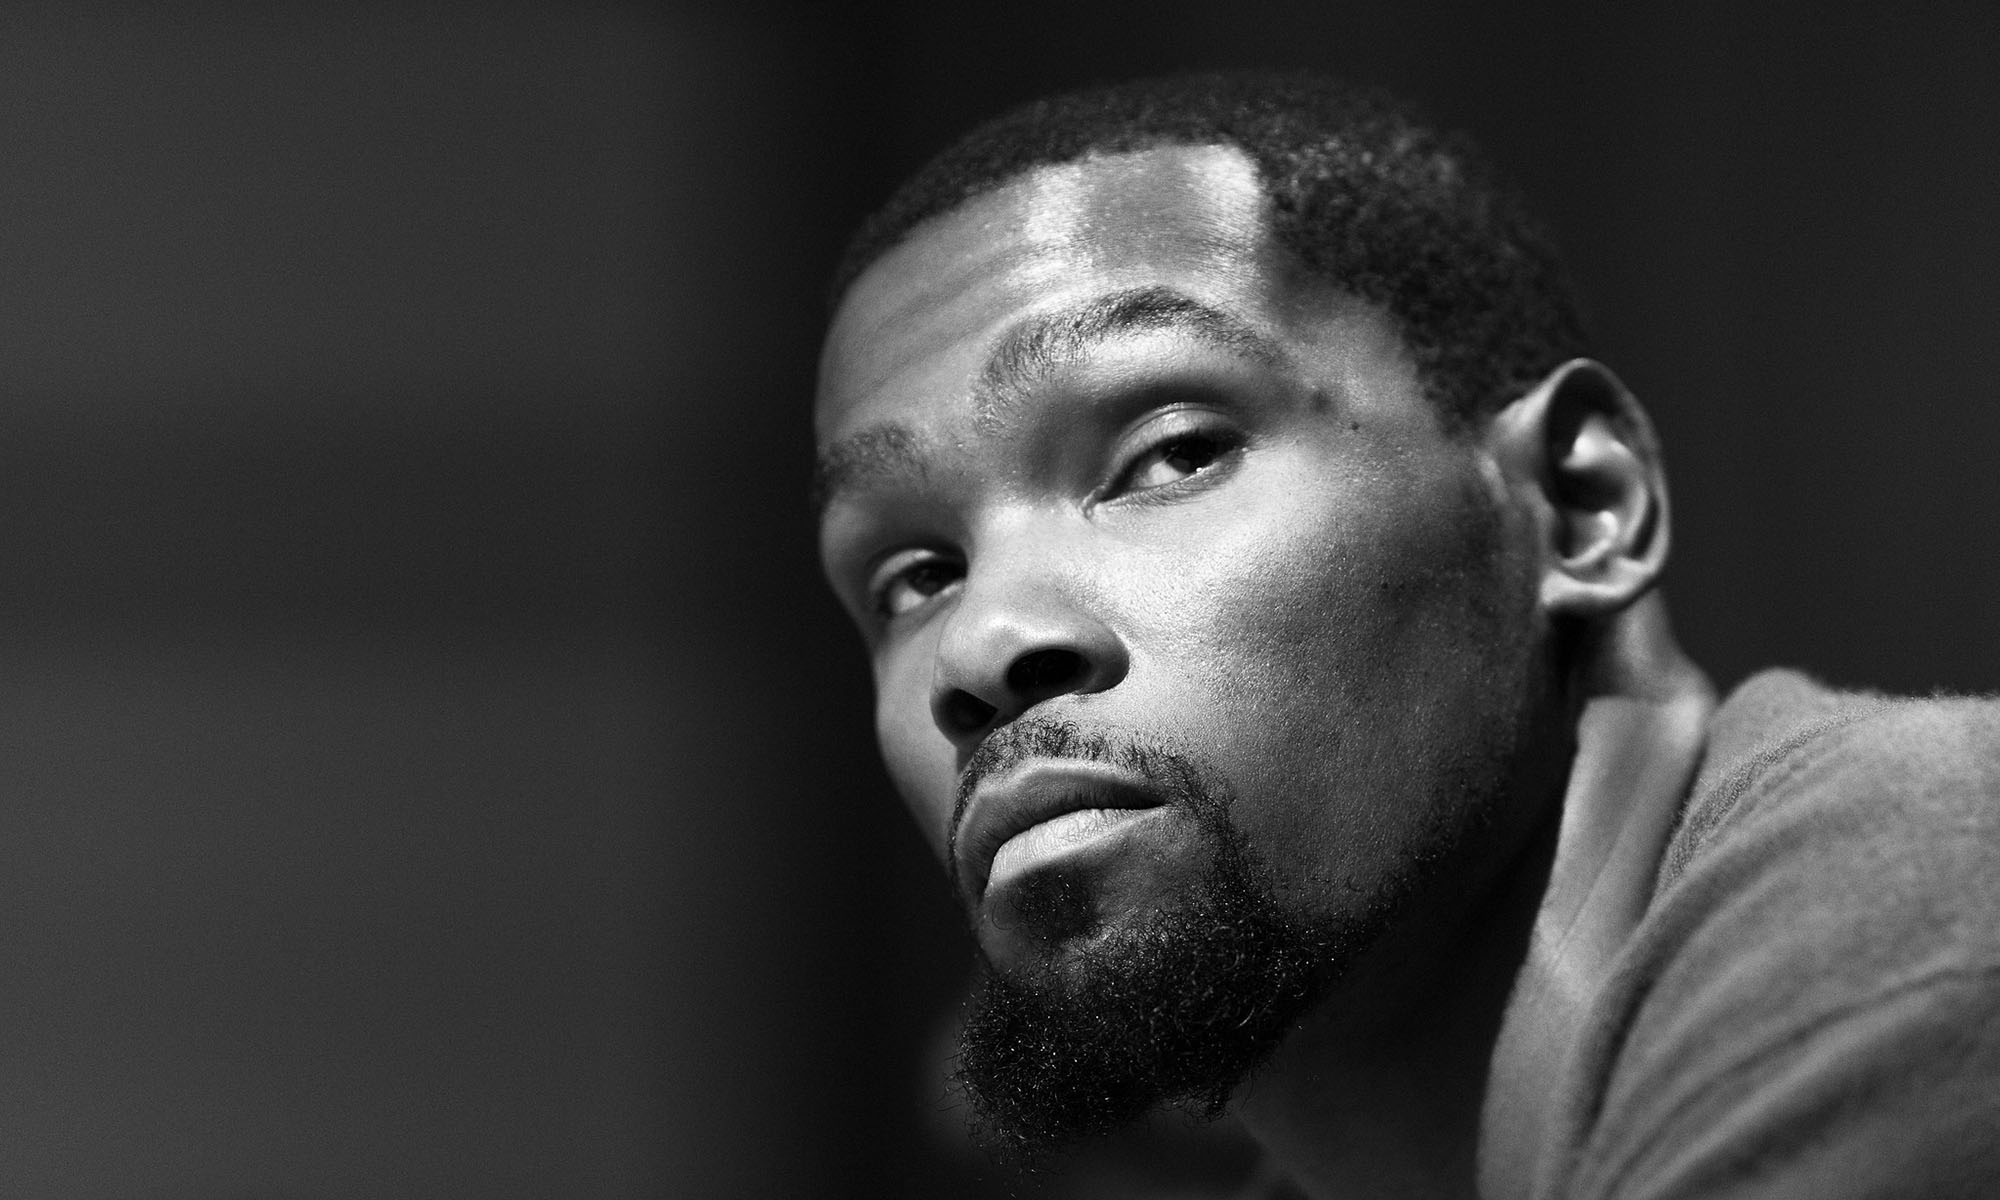 Kevin Durant teams up with Weedmaps to end cannabis stigma